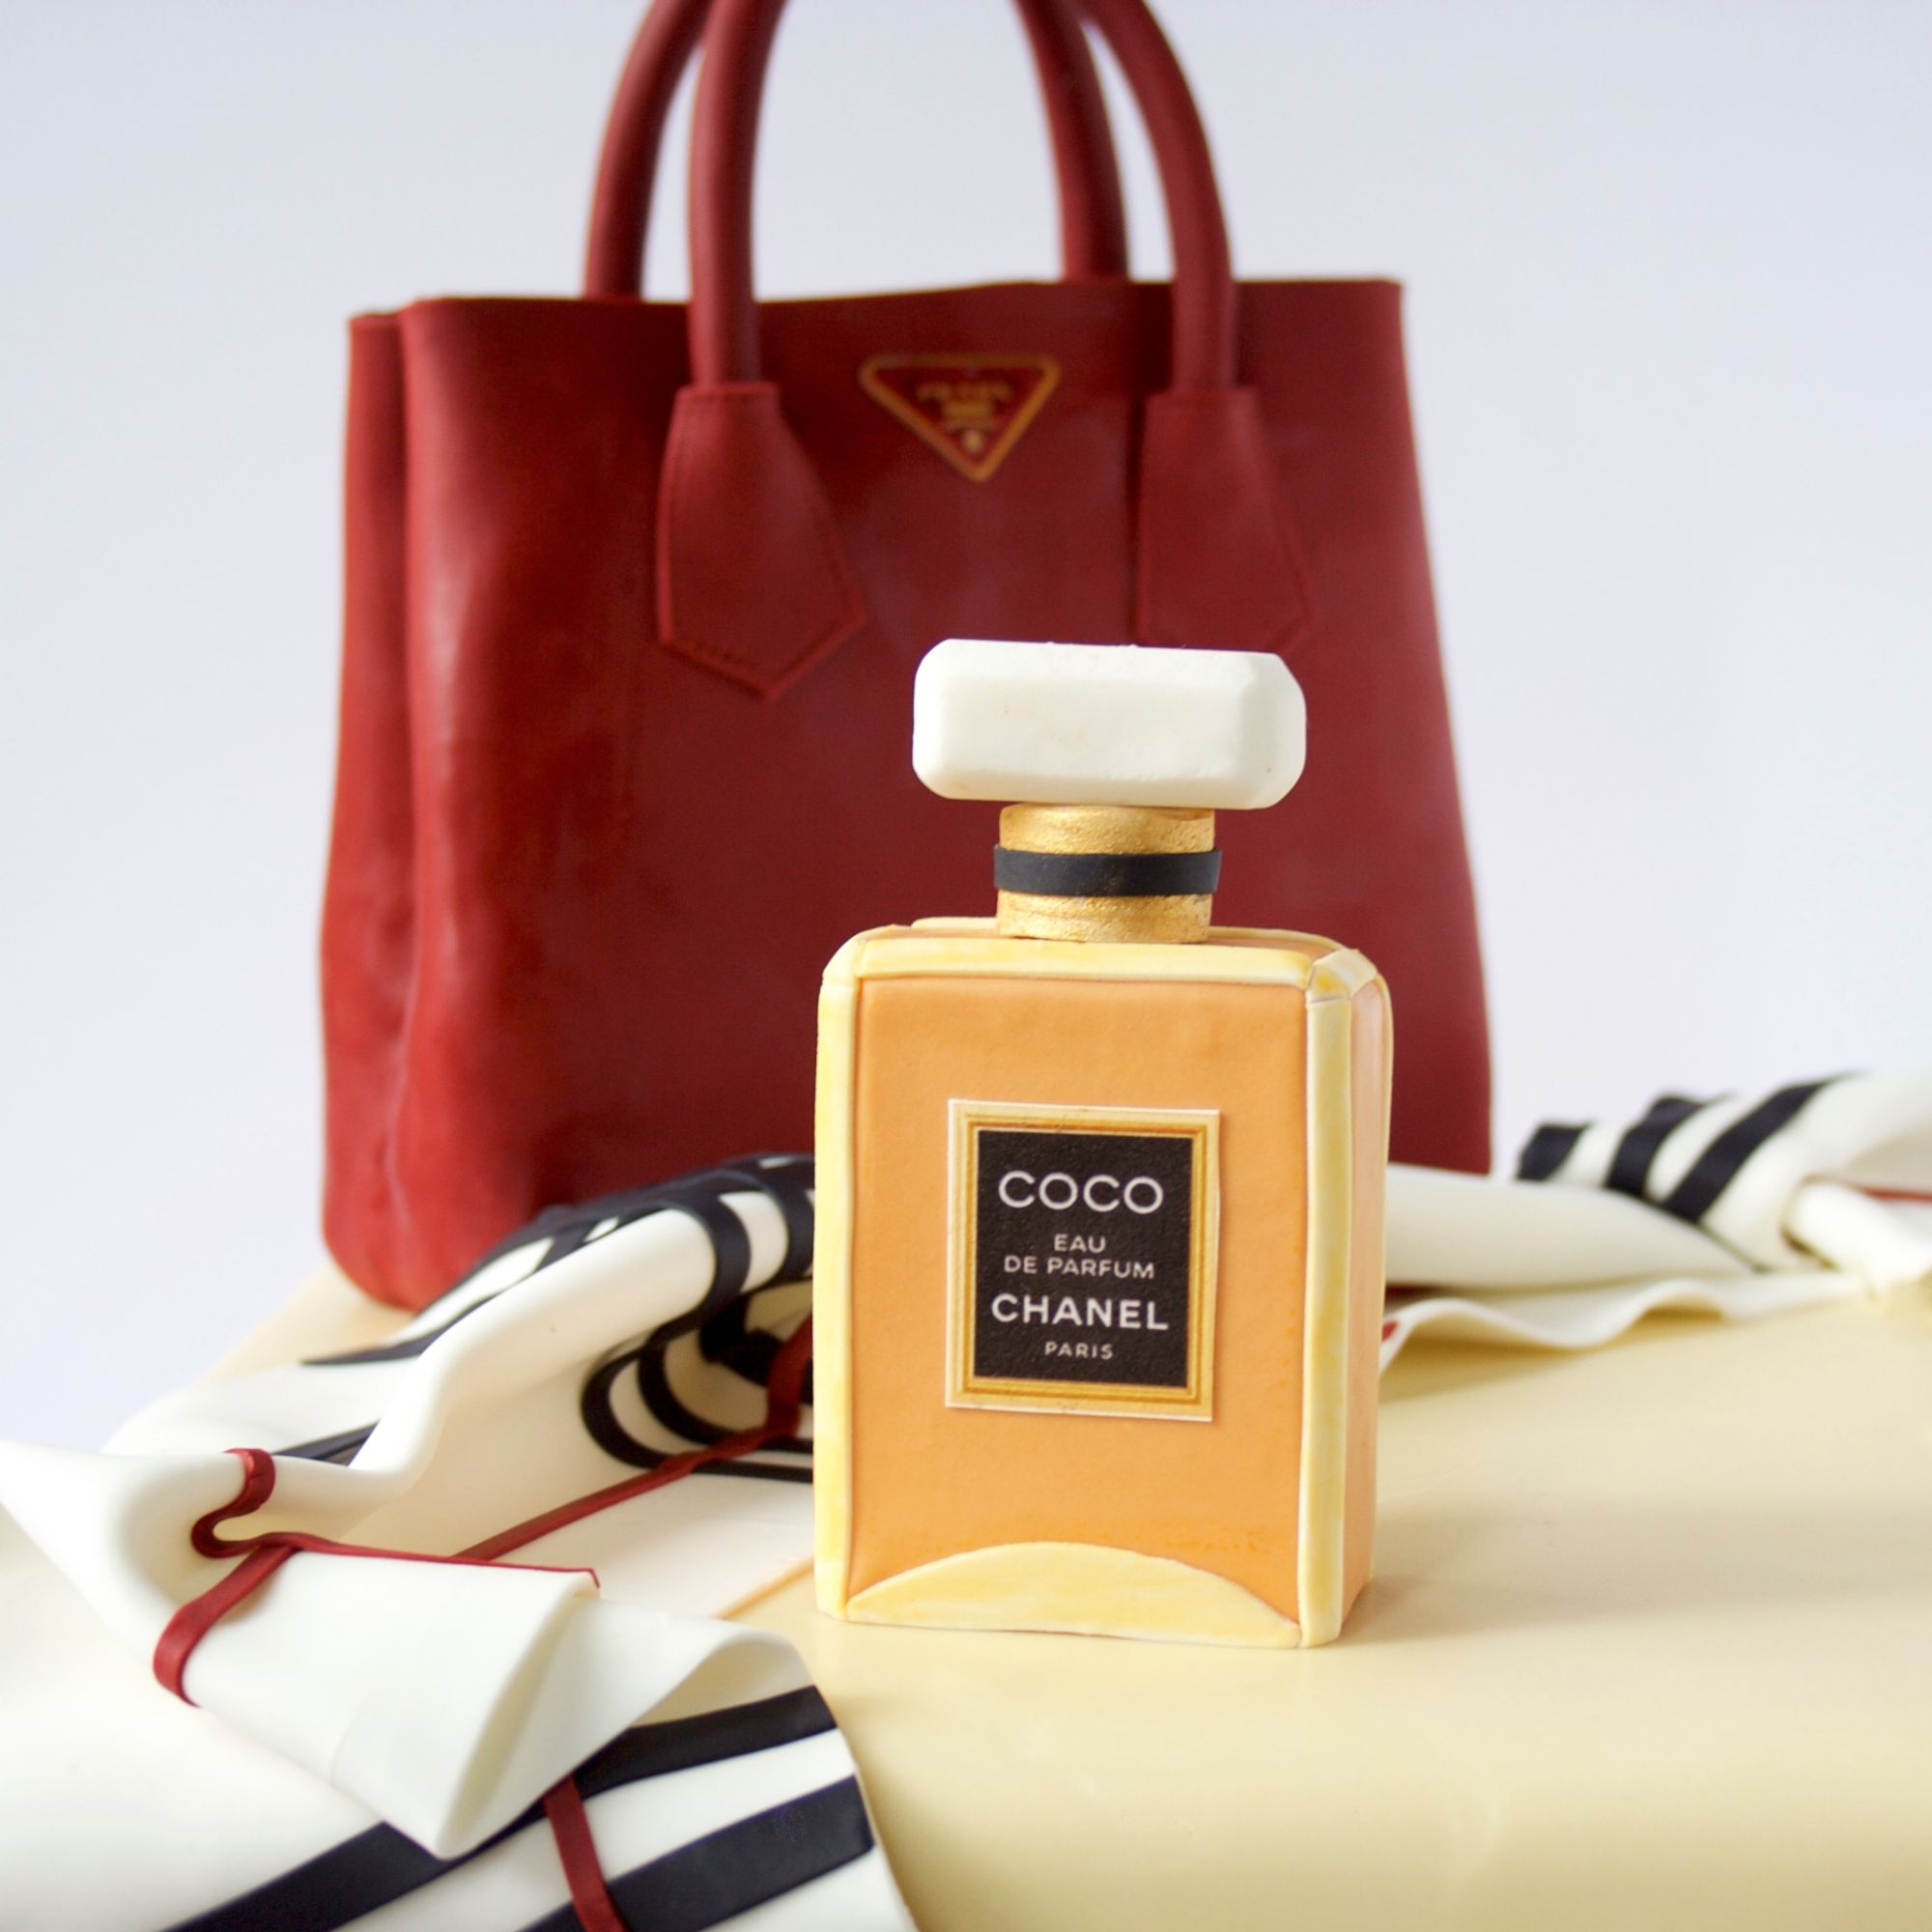 1287 - Fashion Illusion Cake Chanel parfume Prada bag Burberry scarf